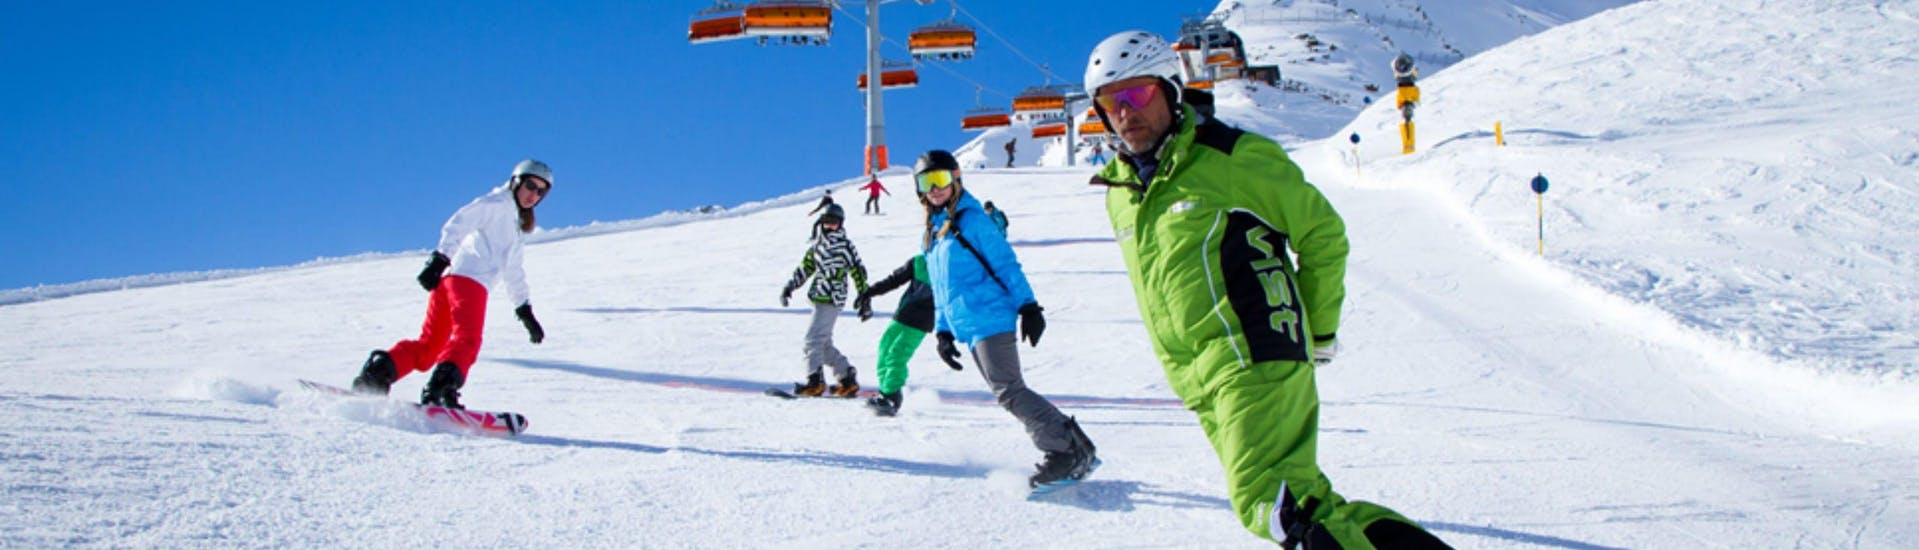 A group of people is learning to snowboard during their Private Snowboarding Lessons for Kids & Adults with the ski school Ski- und Bikeschule Ötztal Sölden.